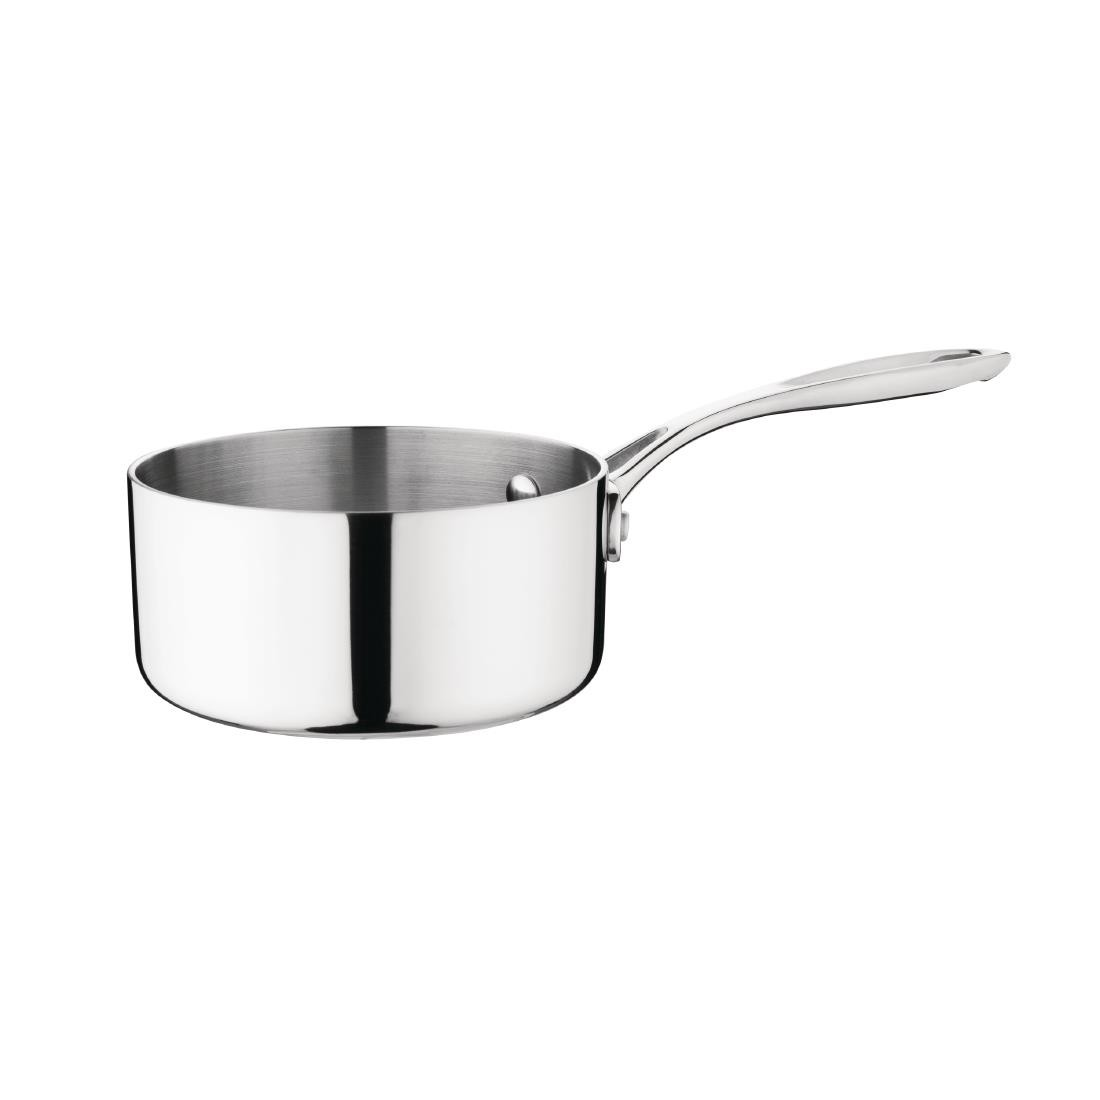 Vogue Tri Wall Saucepan St/St 3L / 200mm